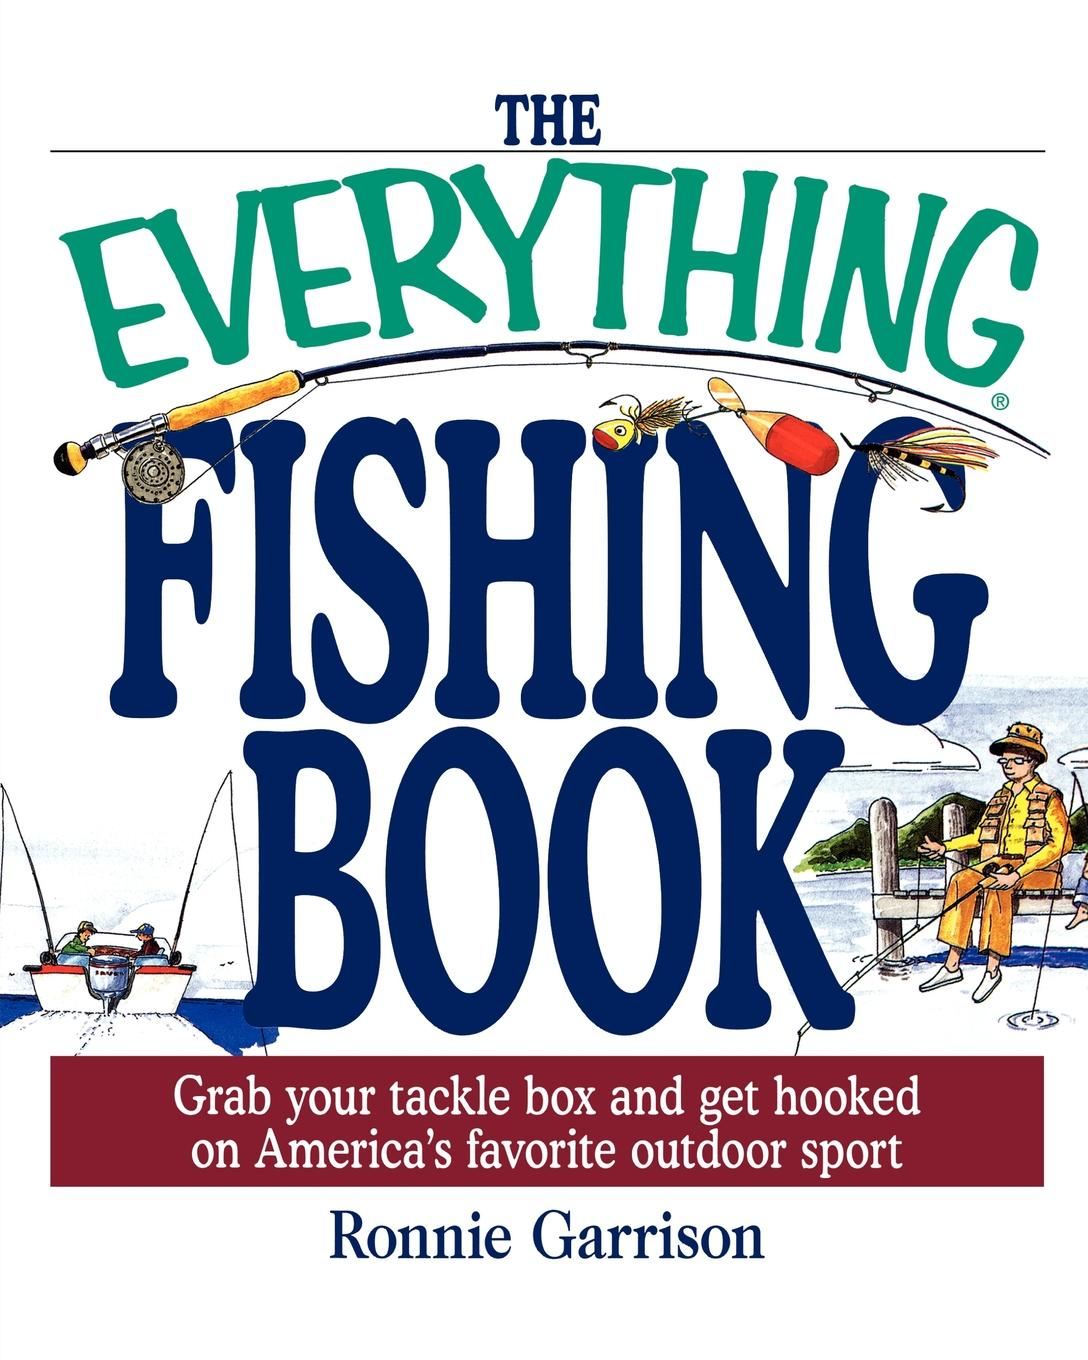 цена на Ronnie Garrison The Everything Fishing Book. Grab Your Tackle Box and Get Hooked on America.s Favorite Ougrab Your Tackle Box and Get Hooked on America.s Favorite